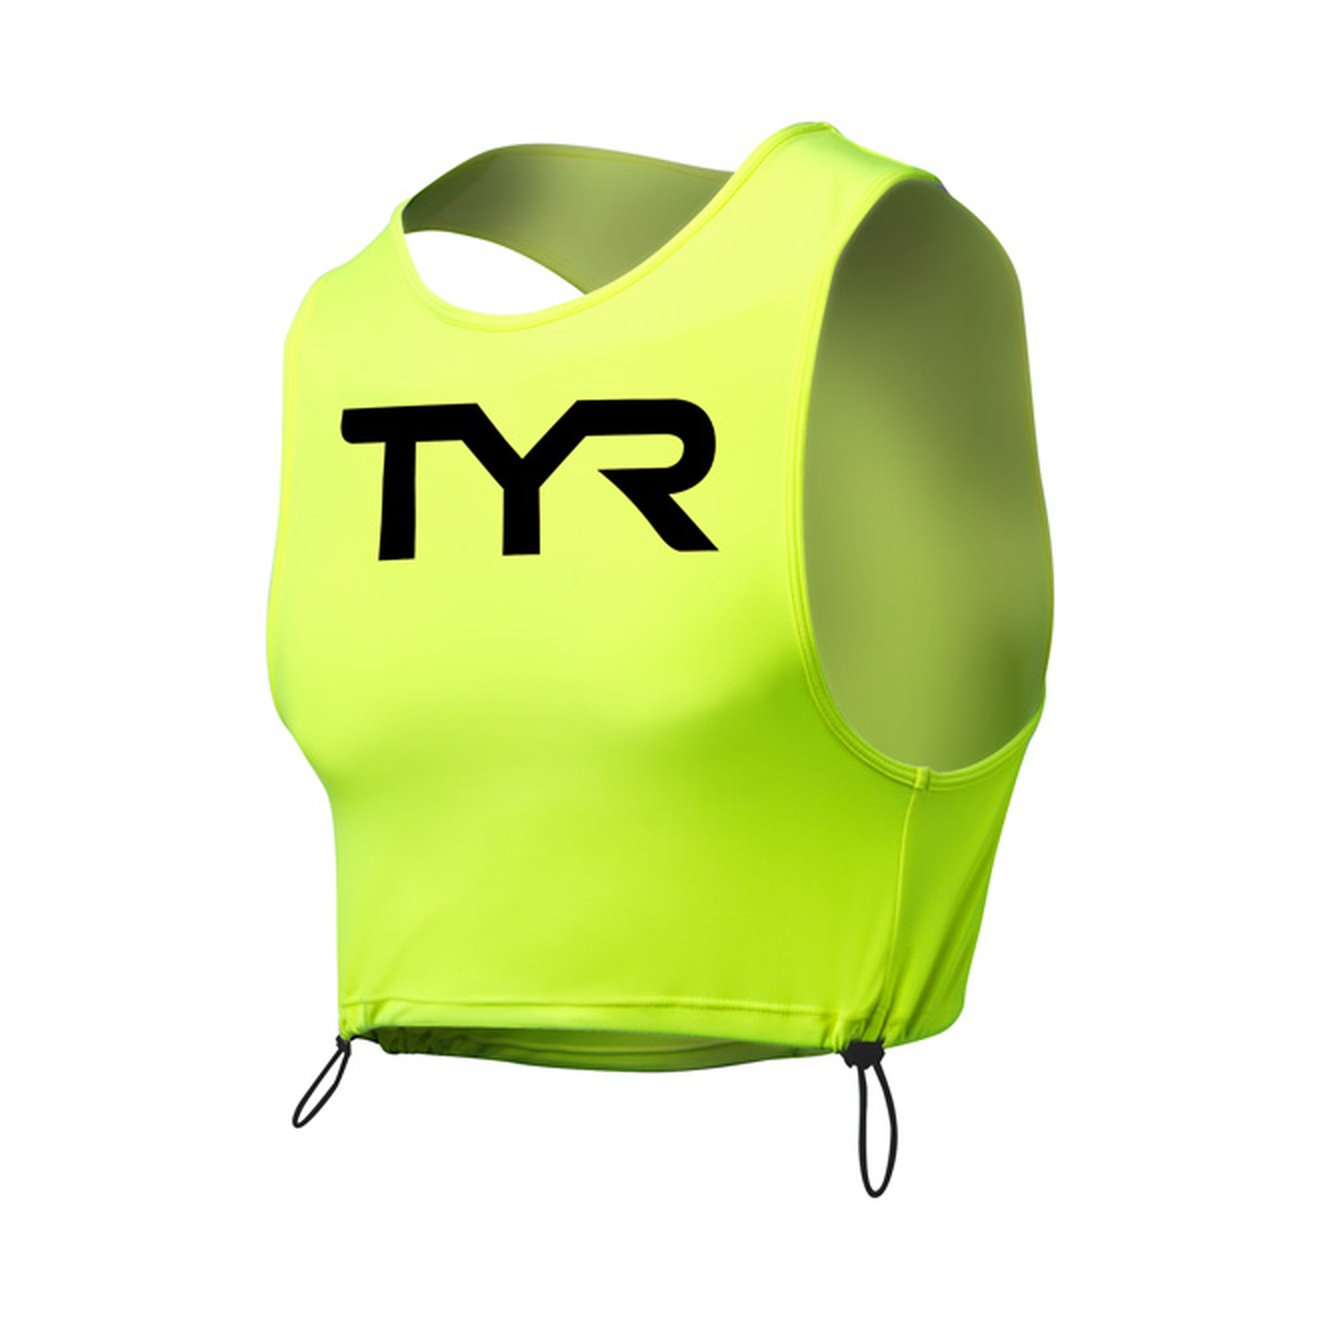 TYR 730TPIN1AS M Wohommes Pinnie, jaune, petit Medium